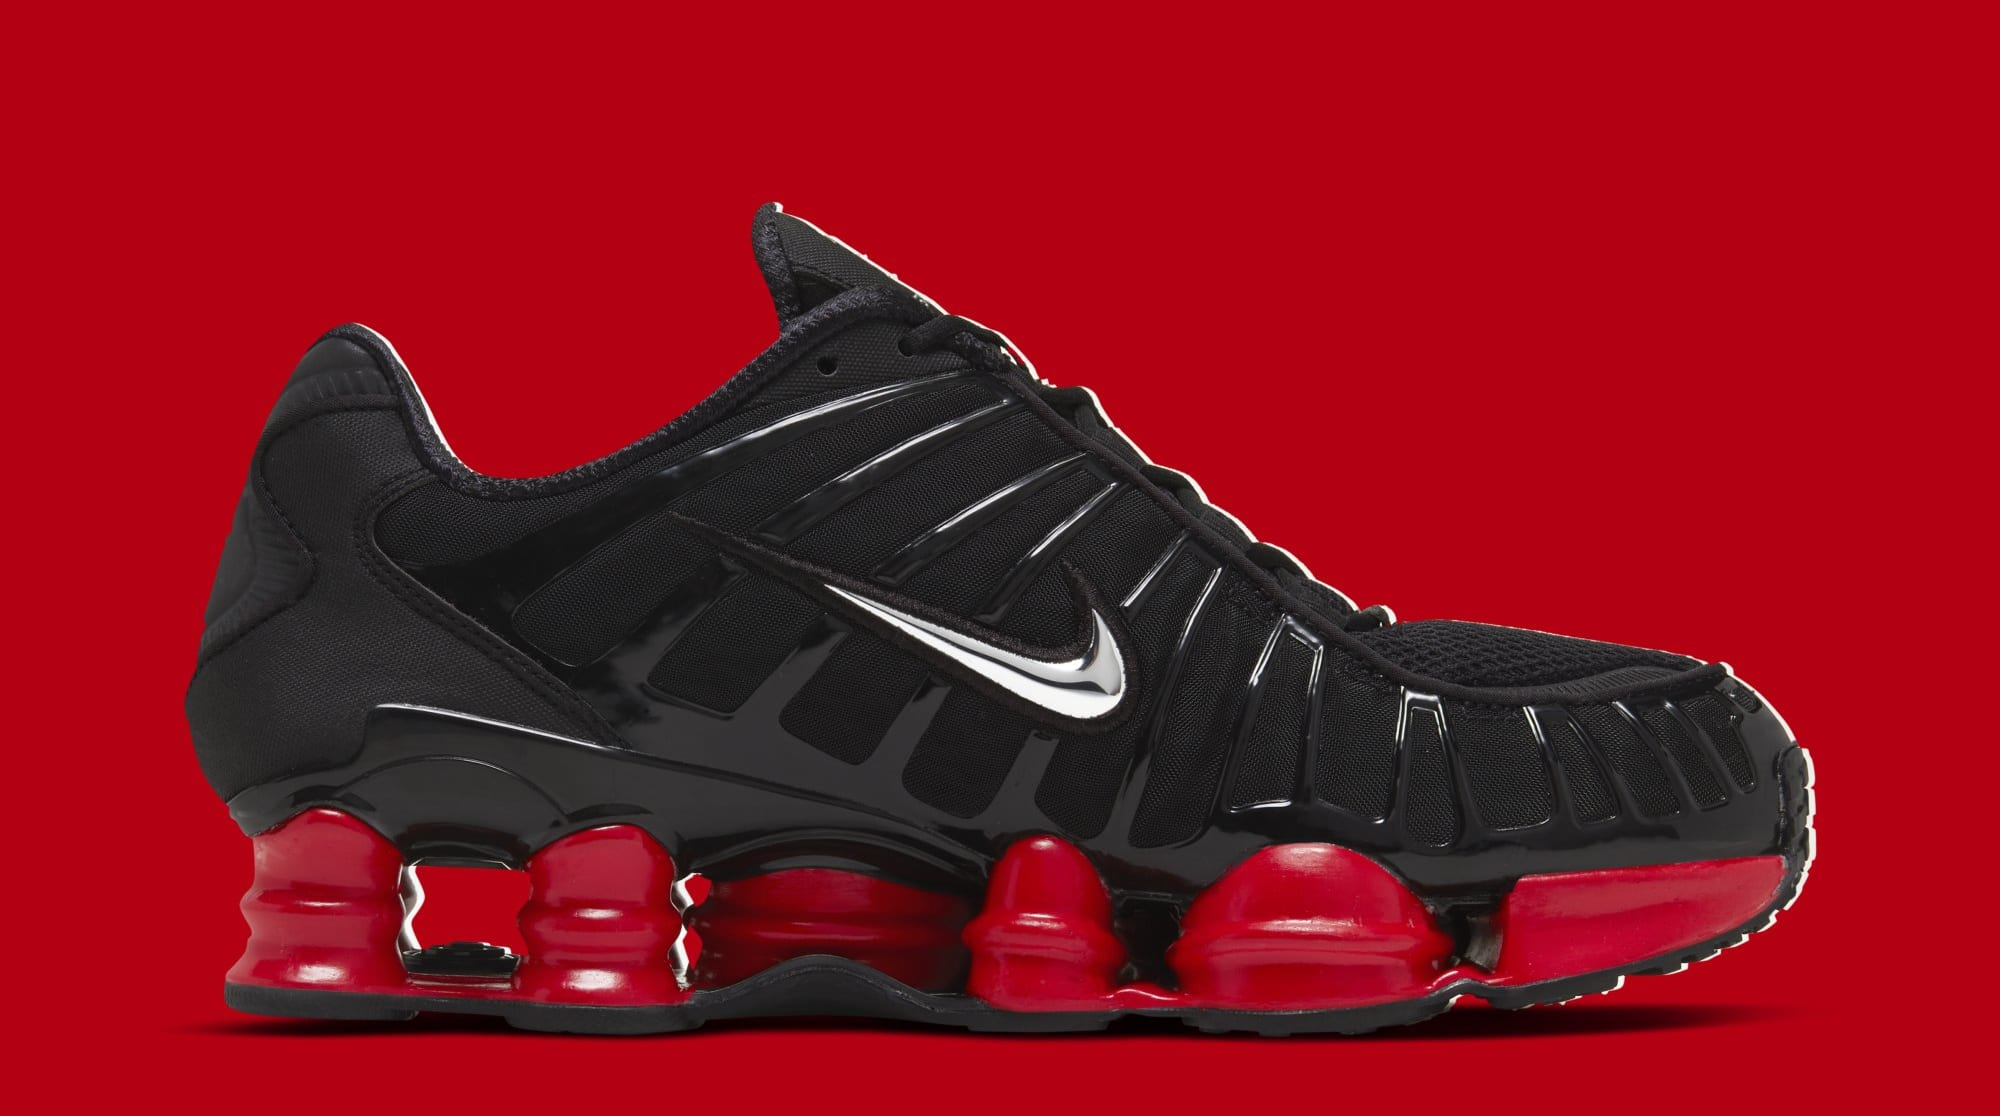 Skepta x Nike Shox TL 'Black/Black/University Red' CI0987-001 (Medial)